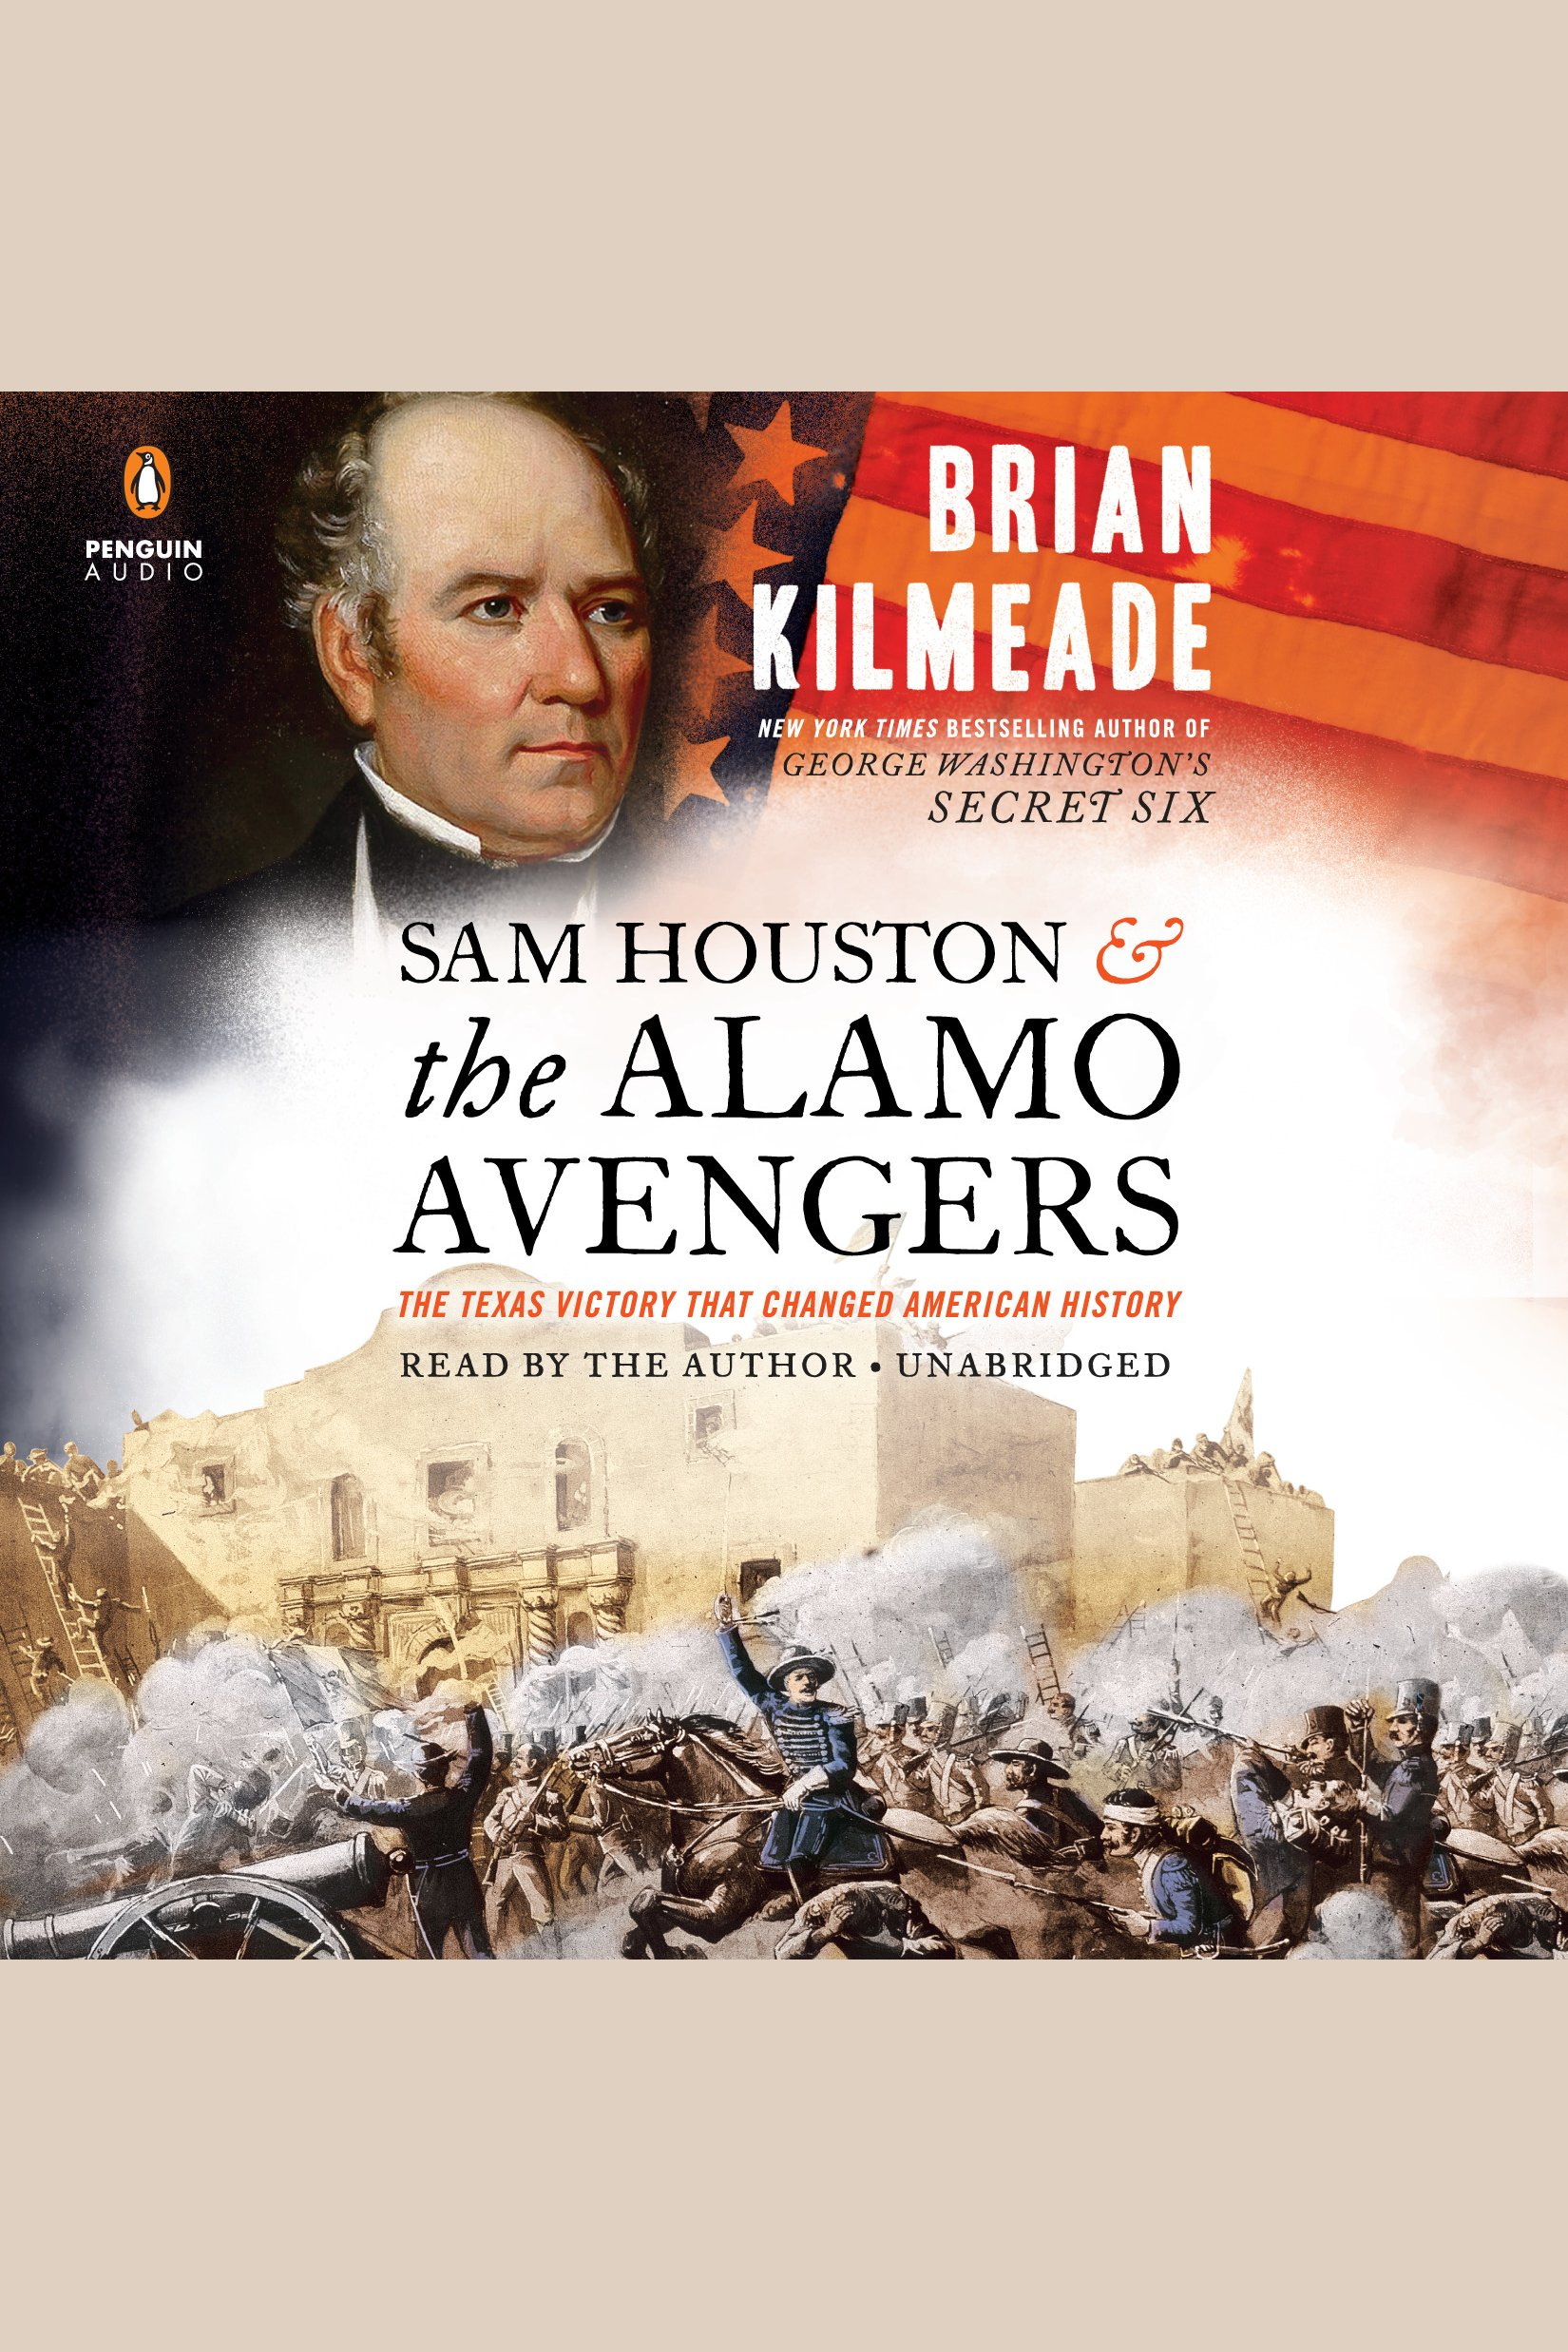 Sam Houston and the Alamo Avengers [electronic resource] : The Texas Victory That Changed American History